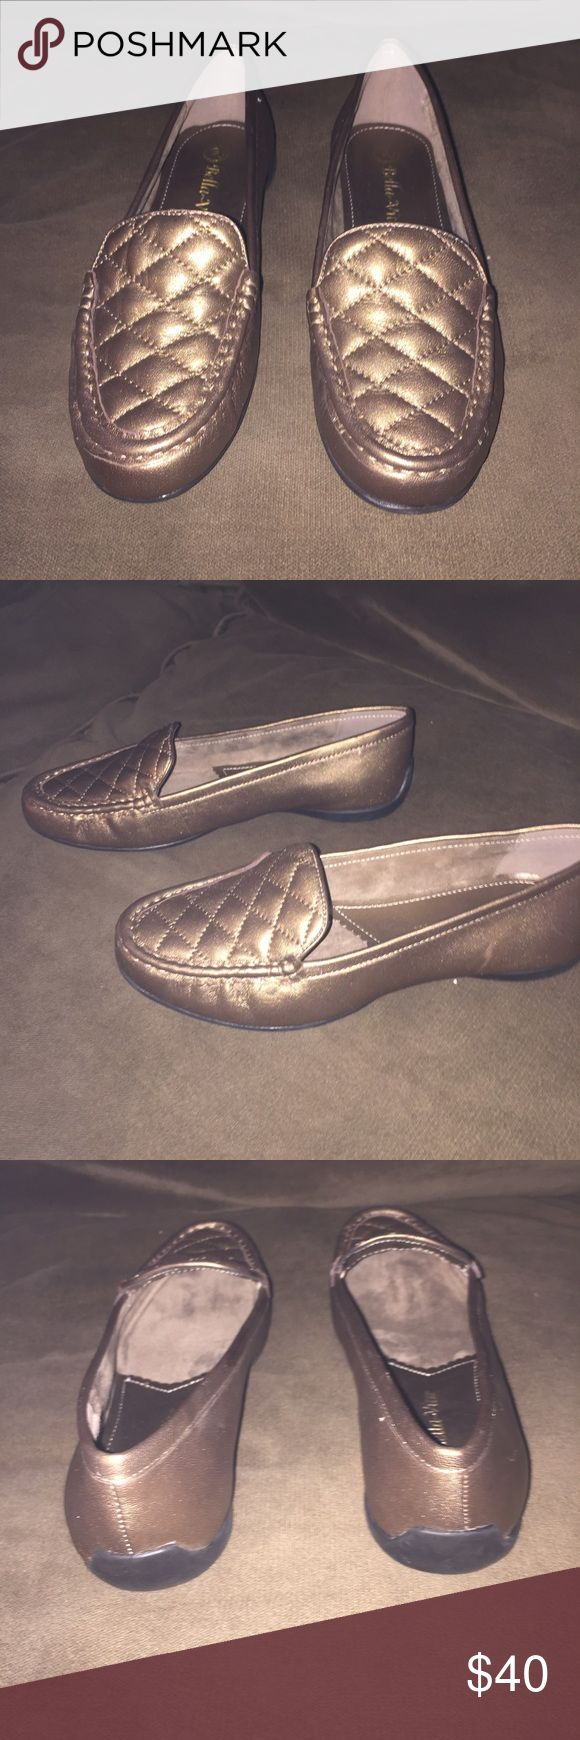 BRAND NEW BELLA VITAS WIDE NWOT Never worn! Excellent condition! Wide! Gorgeous Metallic brown. NWOT Bella Vita Shoes Flats & Loafers